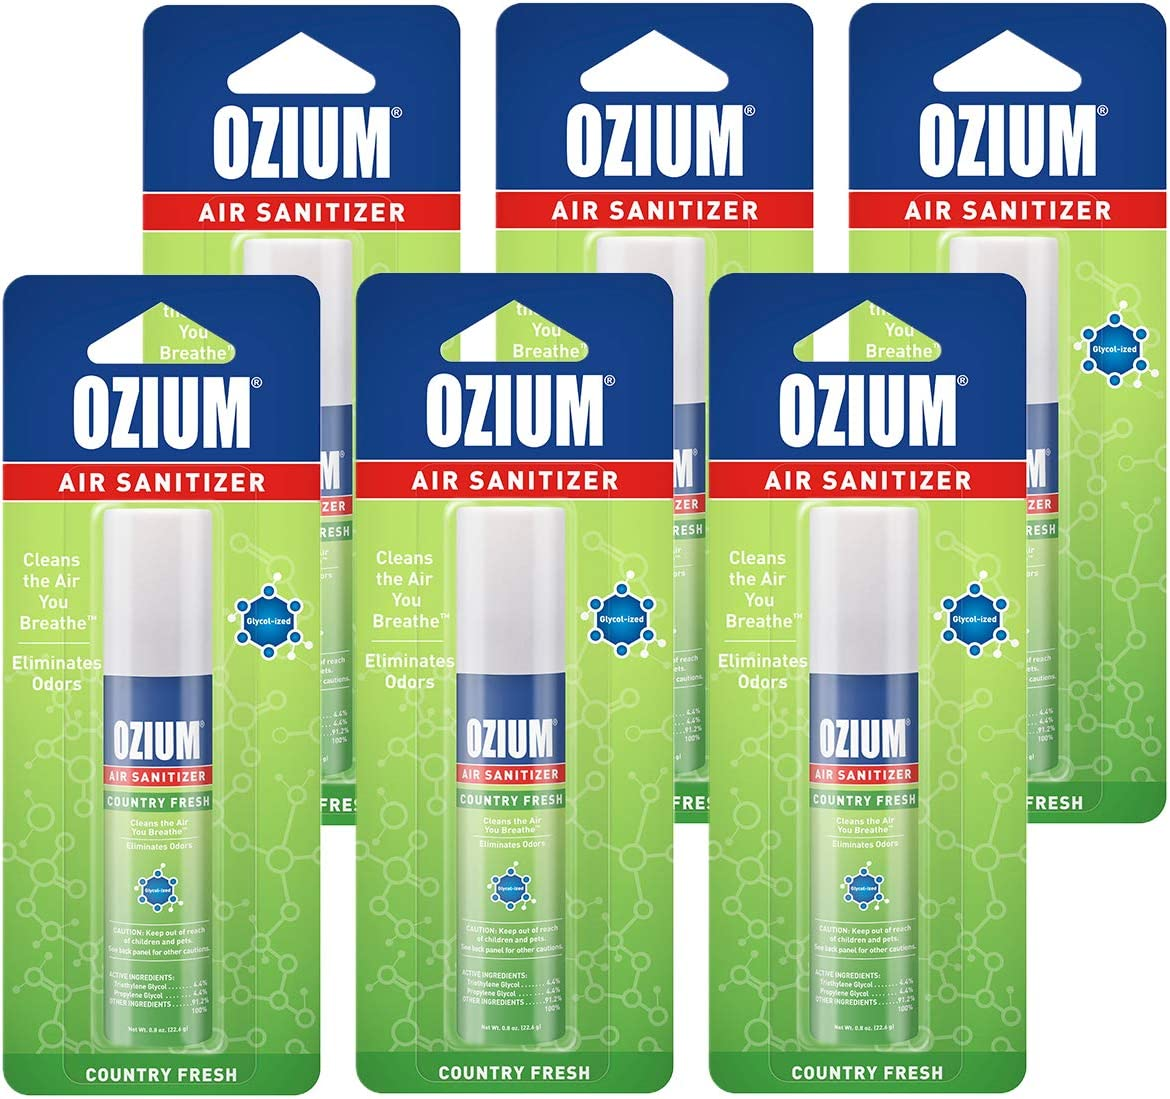 Ozium 0.8 oz. Air Sanitizer & Odor Eliminator for Homes, Cars, Offices and More, Country Fresh, 6-Pack